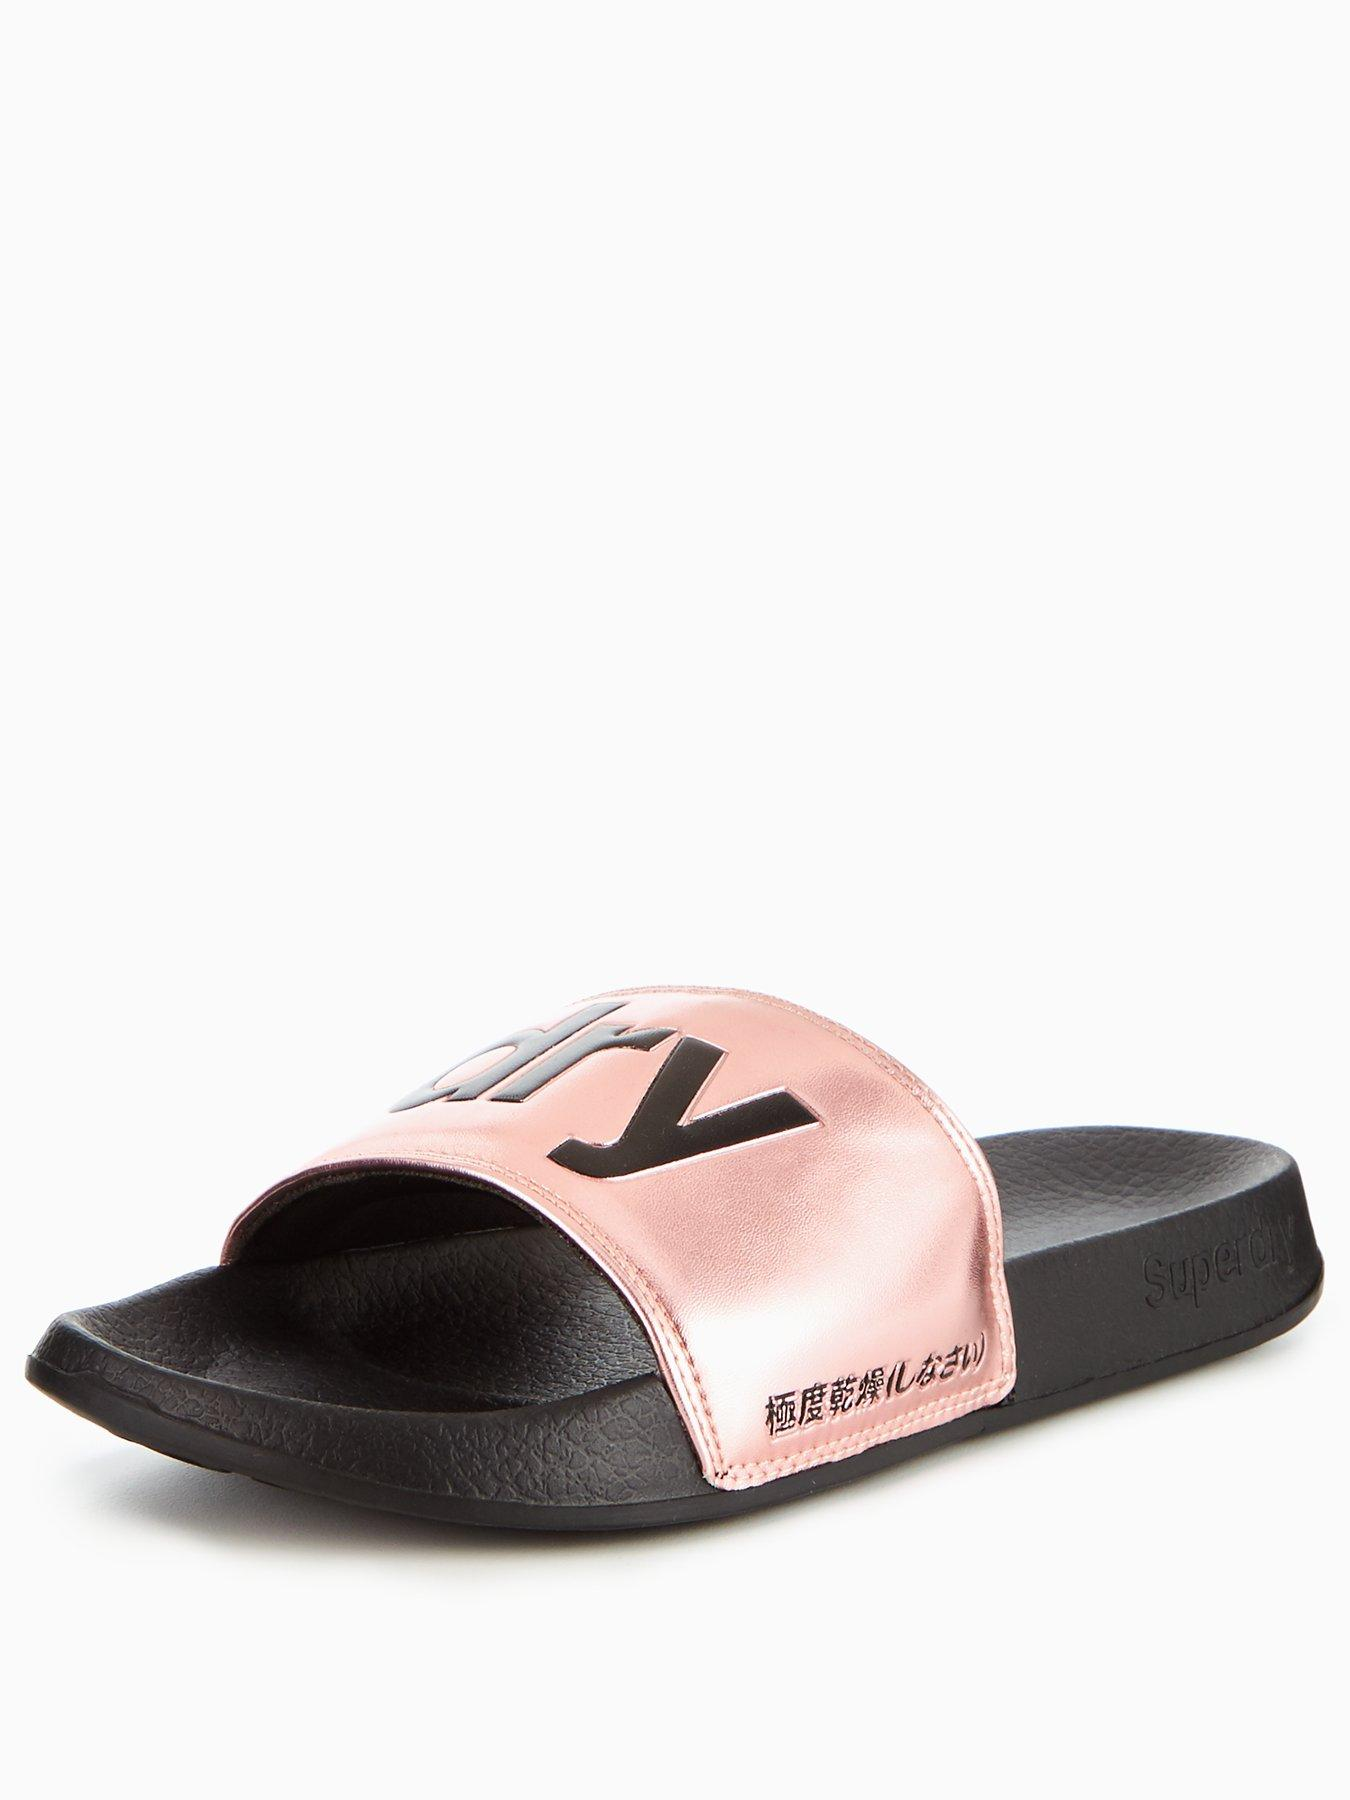 Womens Jelly Pool Slider Flip Flops Superdry ZQzbrOe3Ai